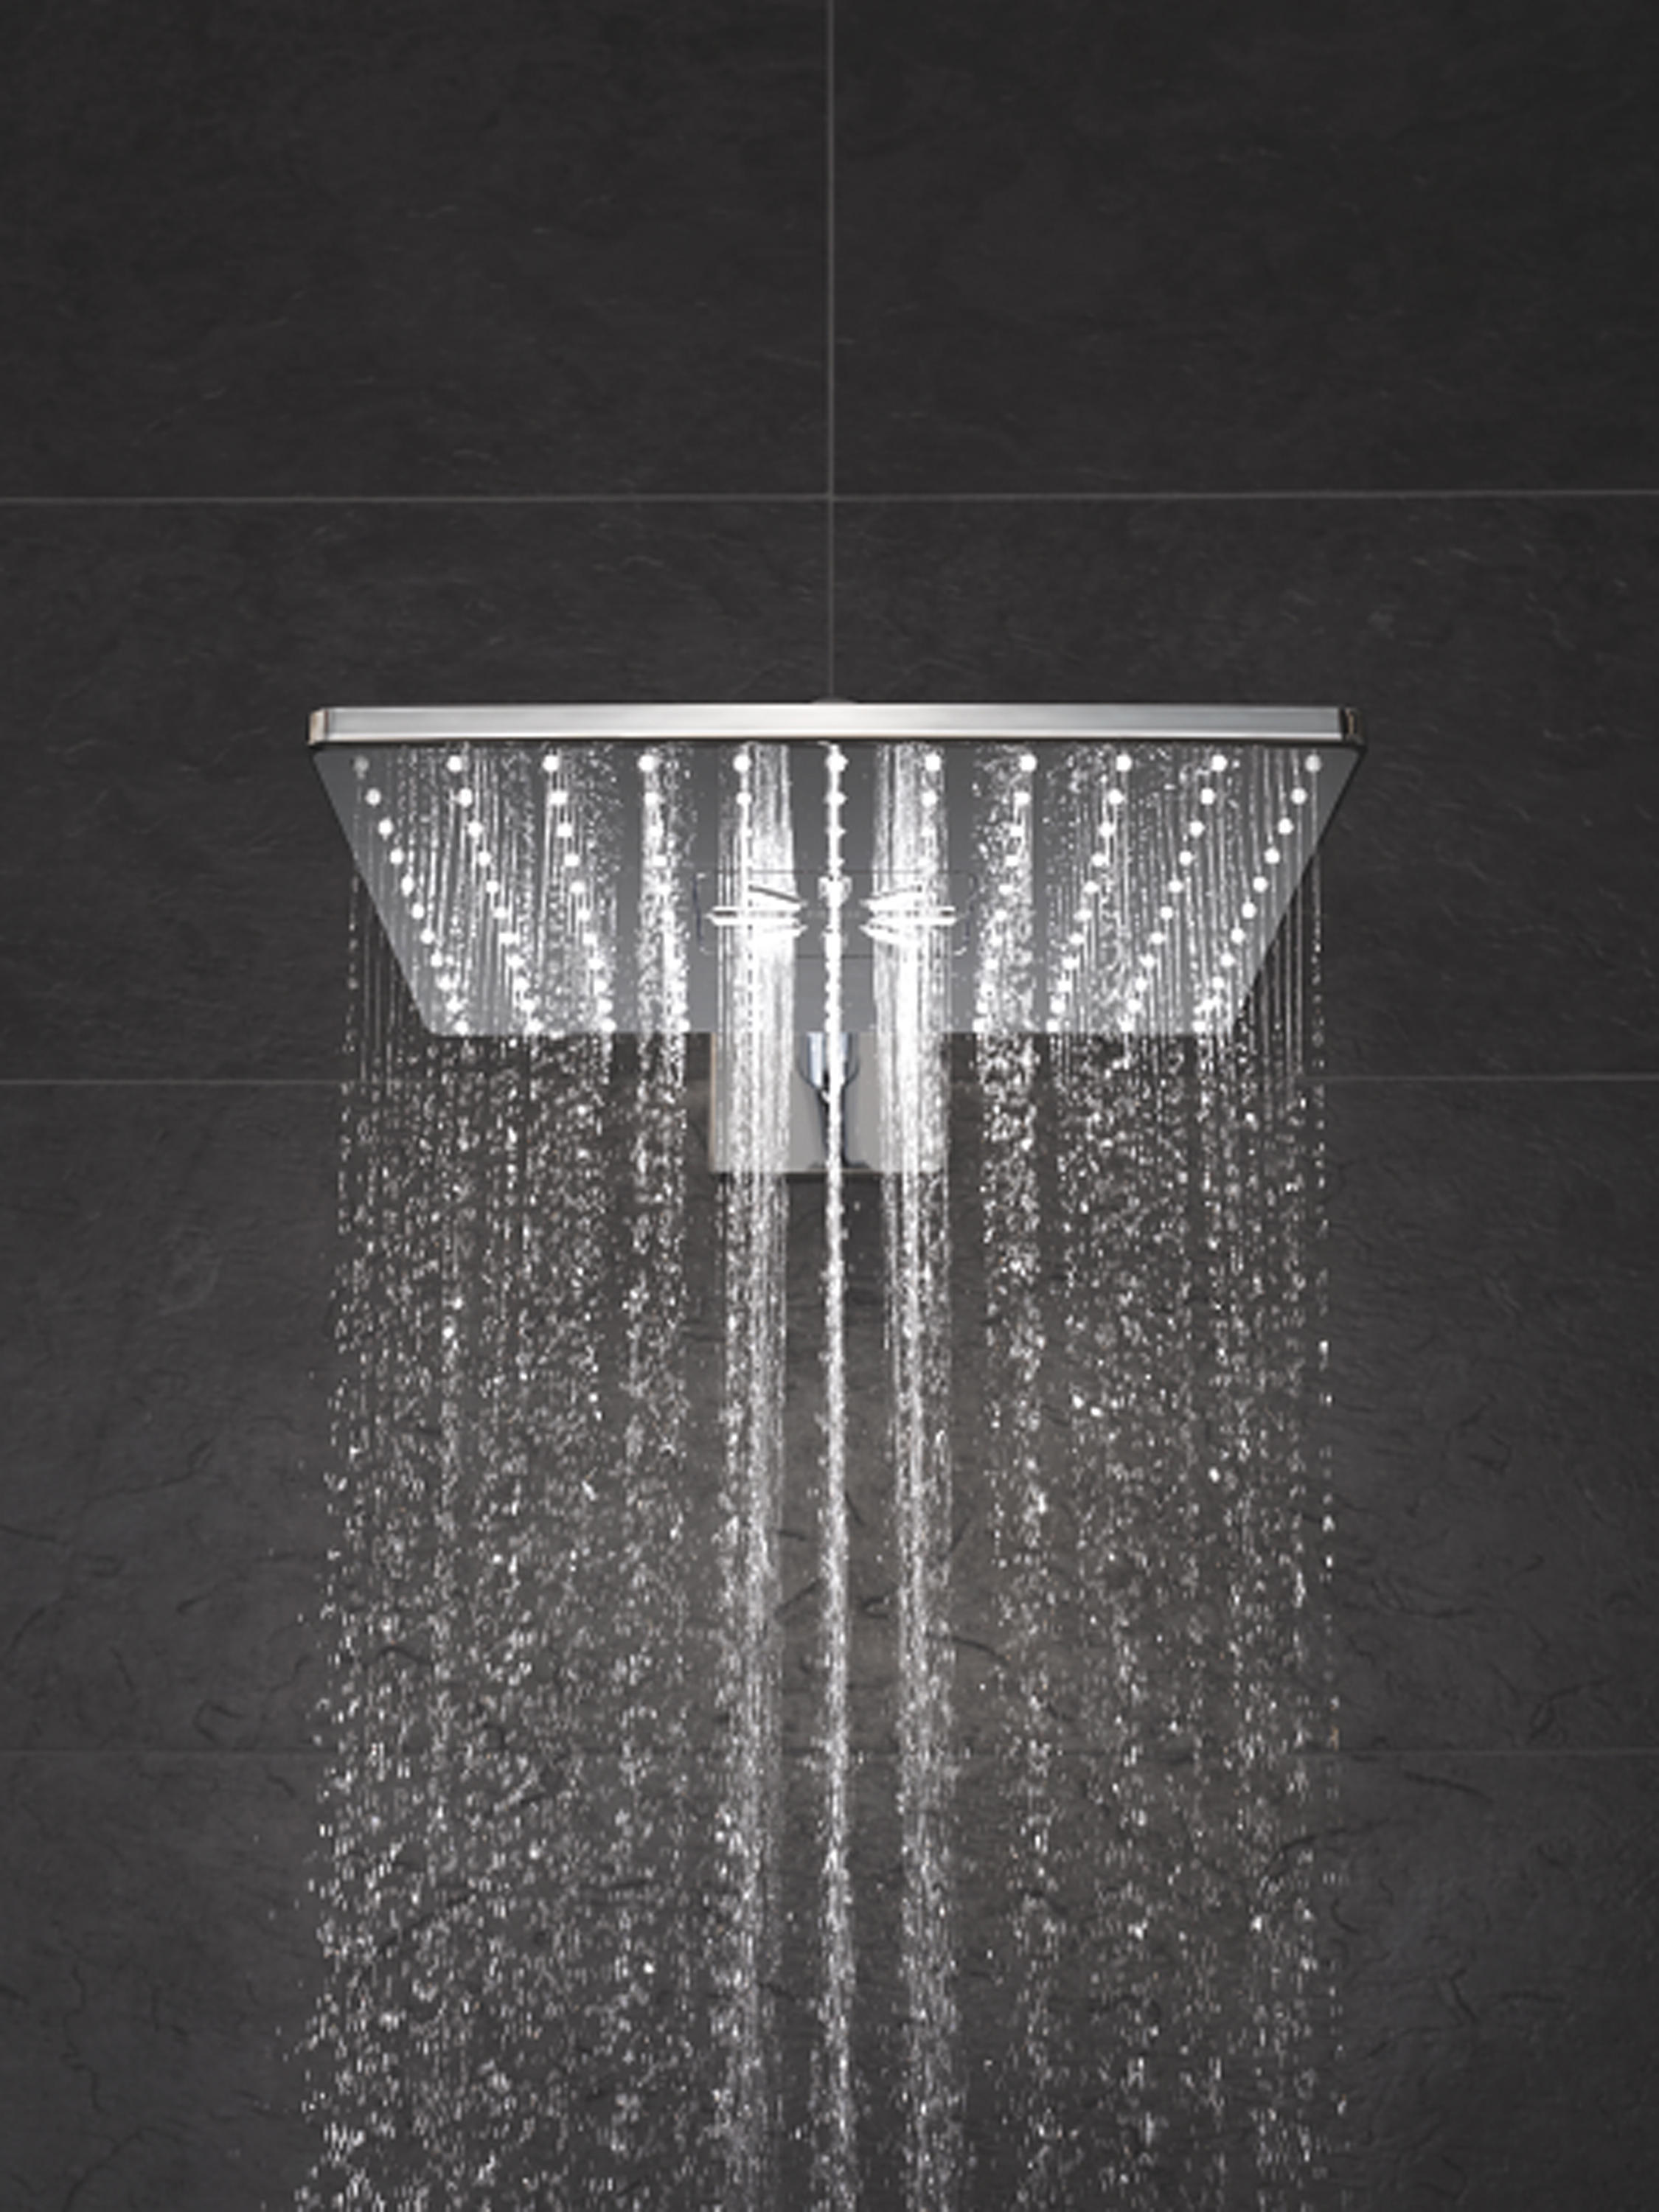 How To Rough In A Shower Head